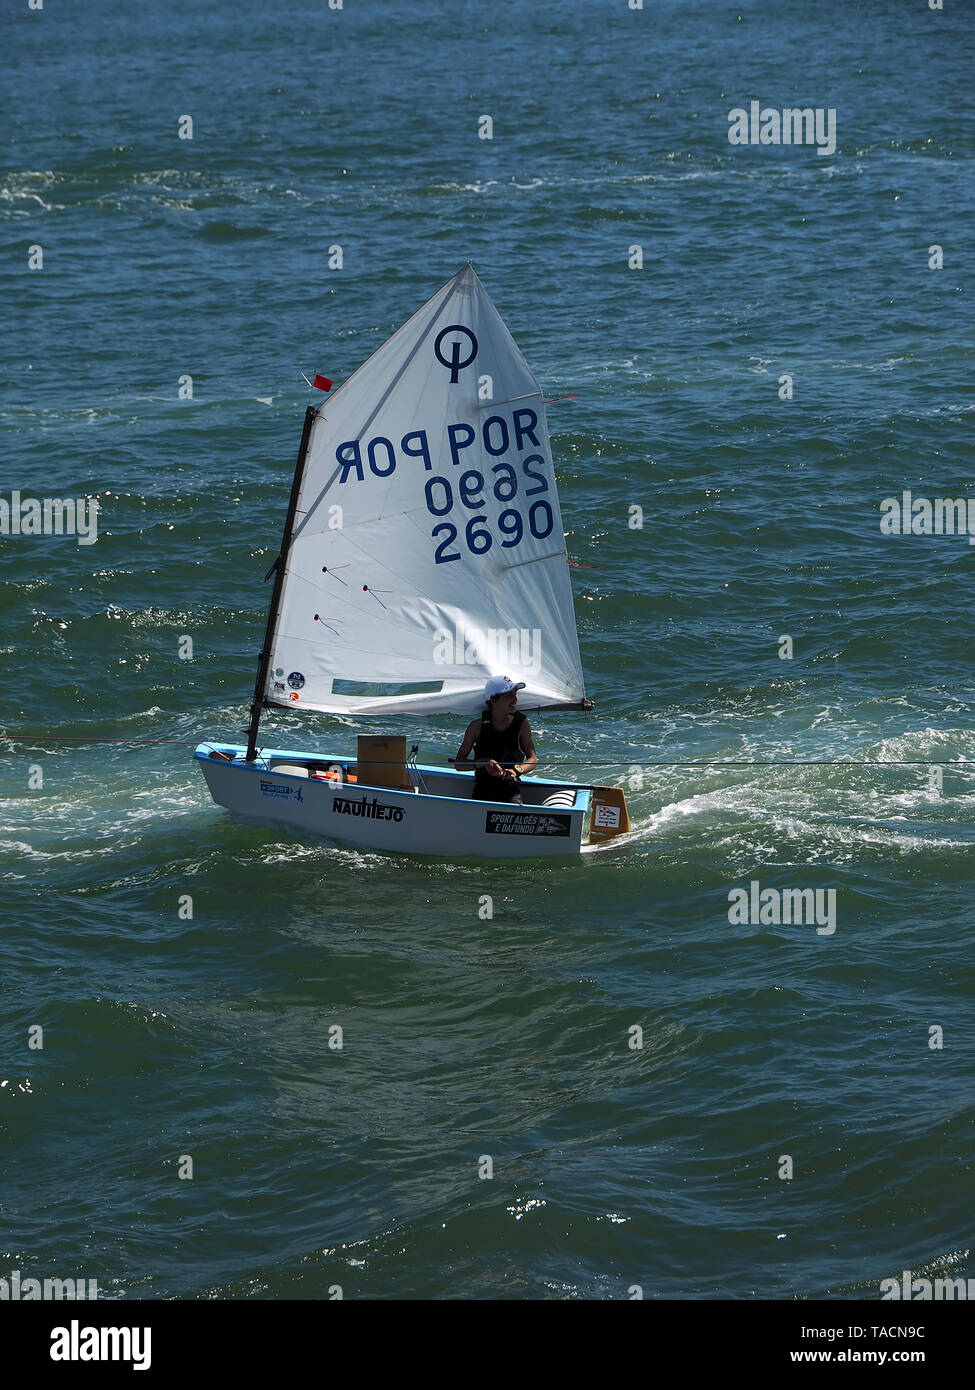 Sail boats of a sailing school on Tejo river in Lisbon - Stock Image